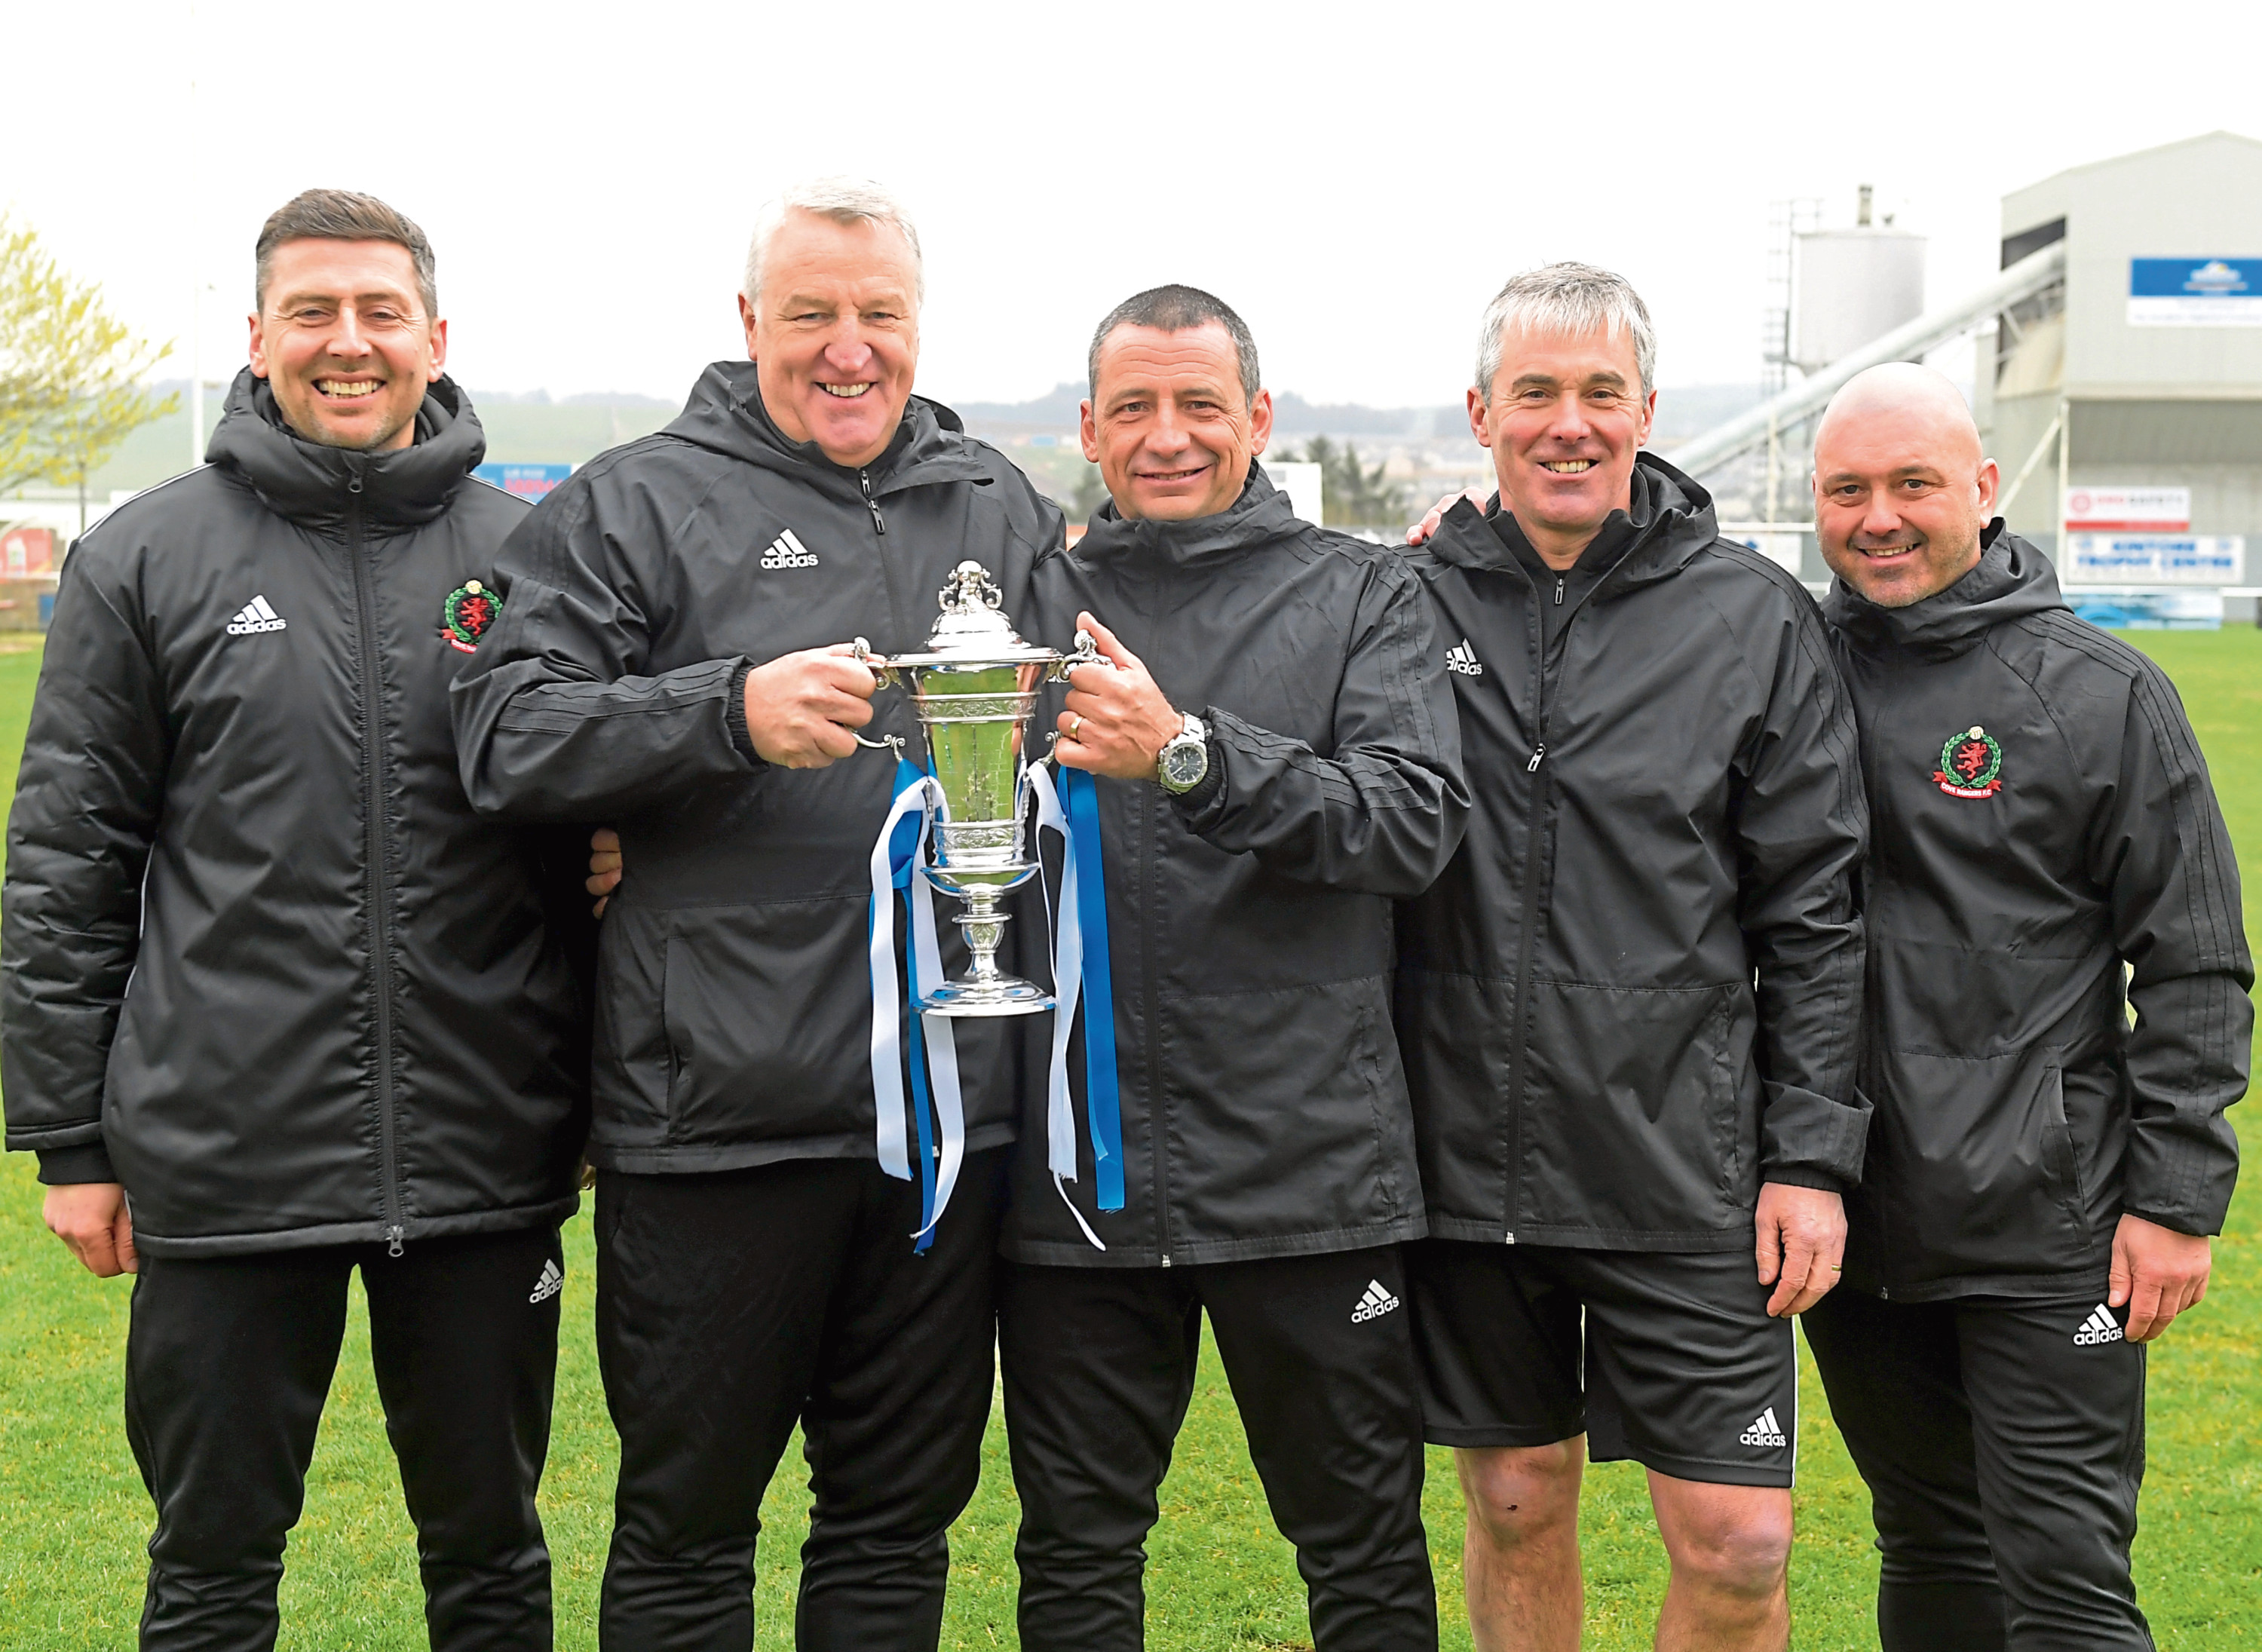 Cove's John Sheran and his team with the Highland League Cup. Graeme Mathieson is to his right.